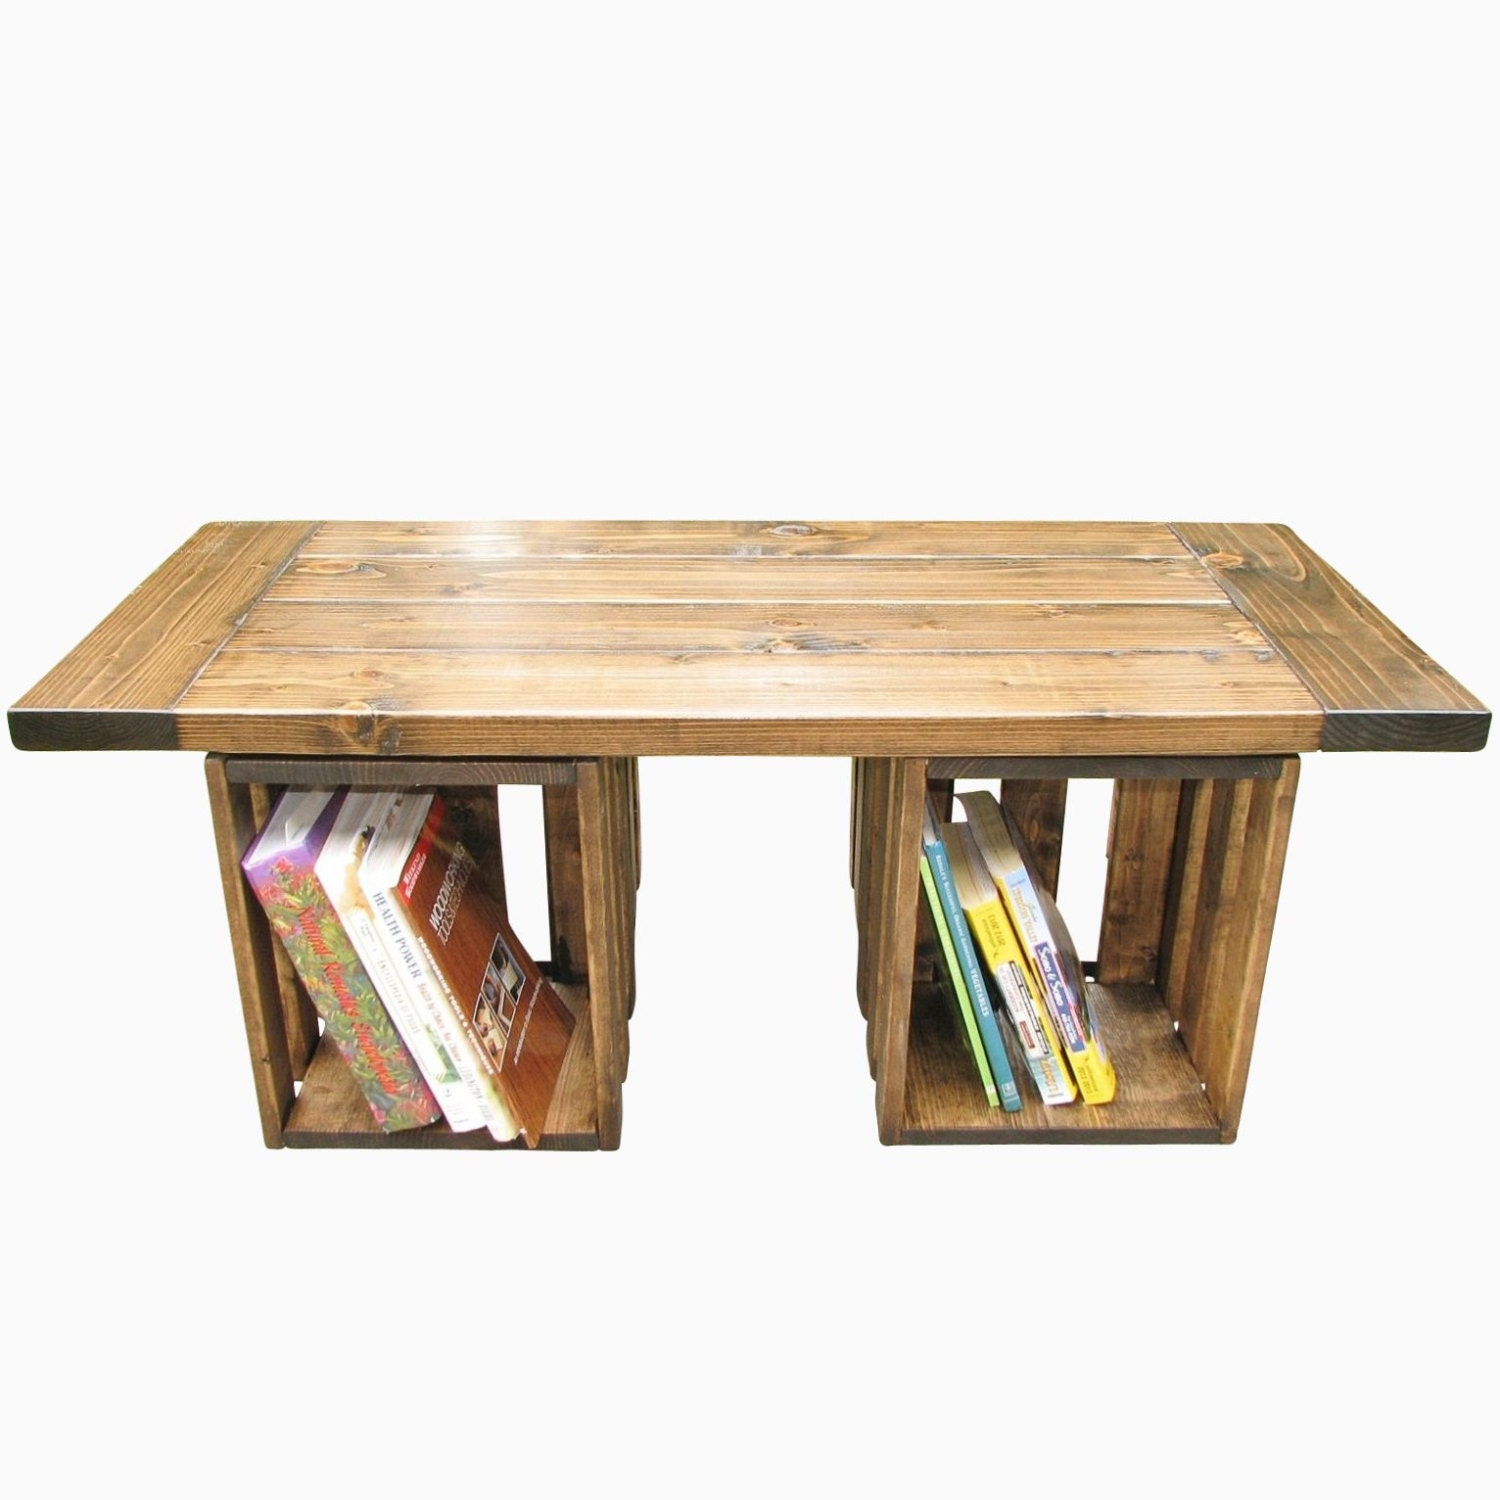 Storage Coffee Table Farmhouse: Coffee Table Farmhouse Rustic Crate Storage Country